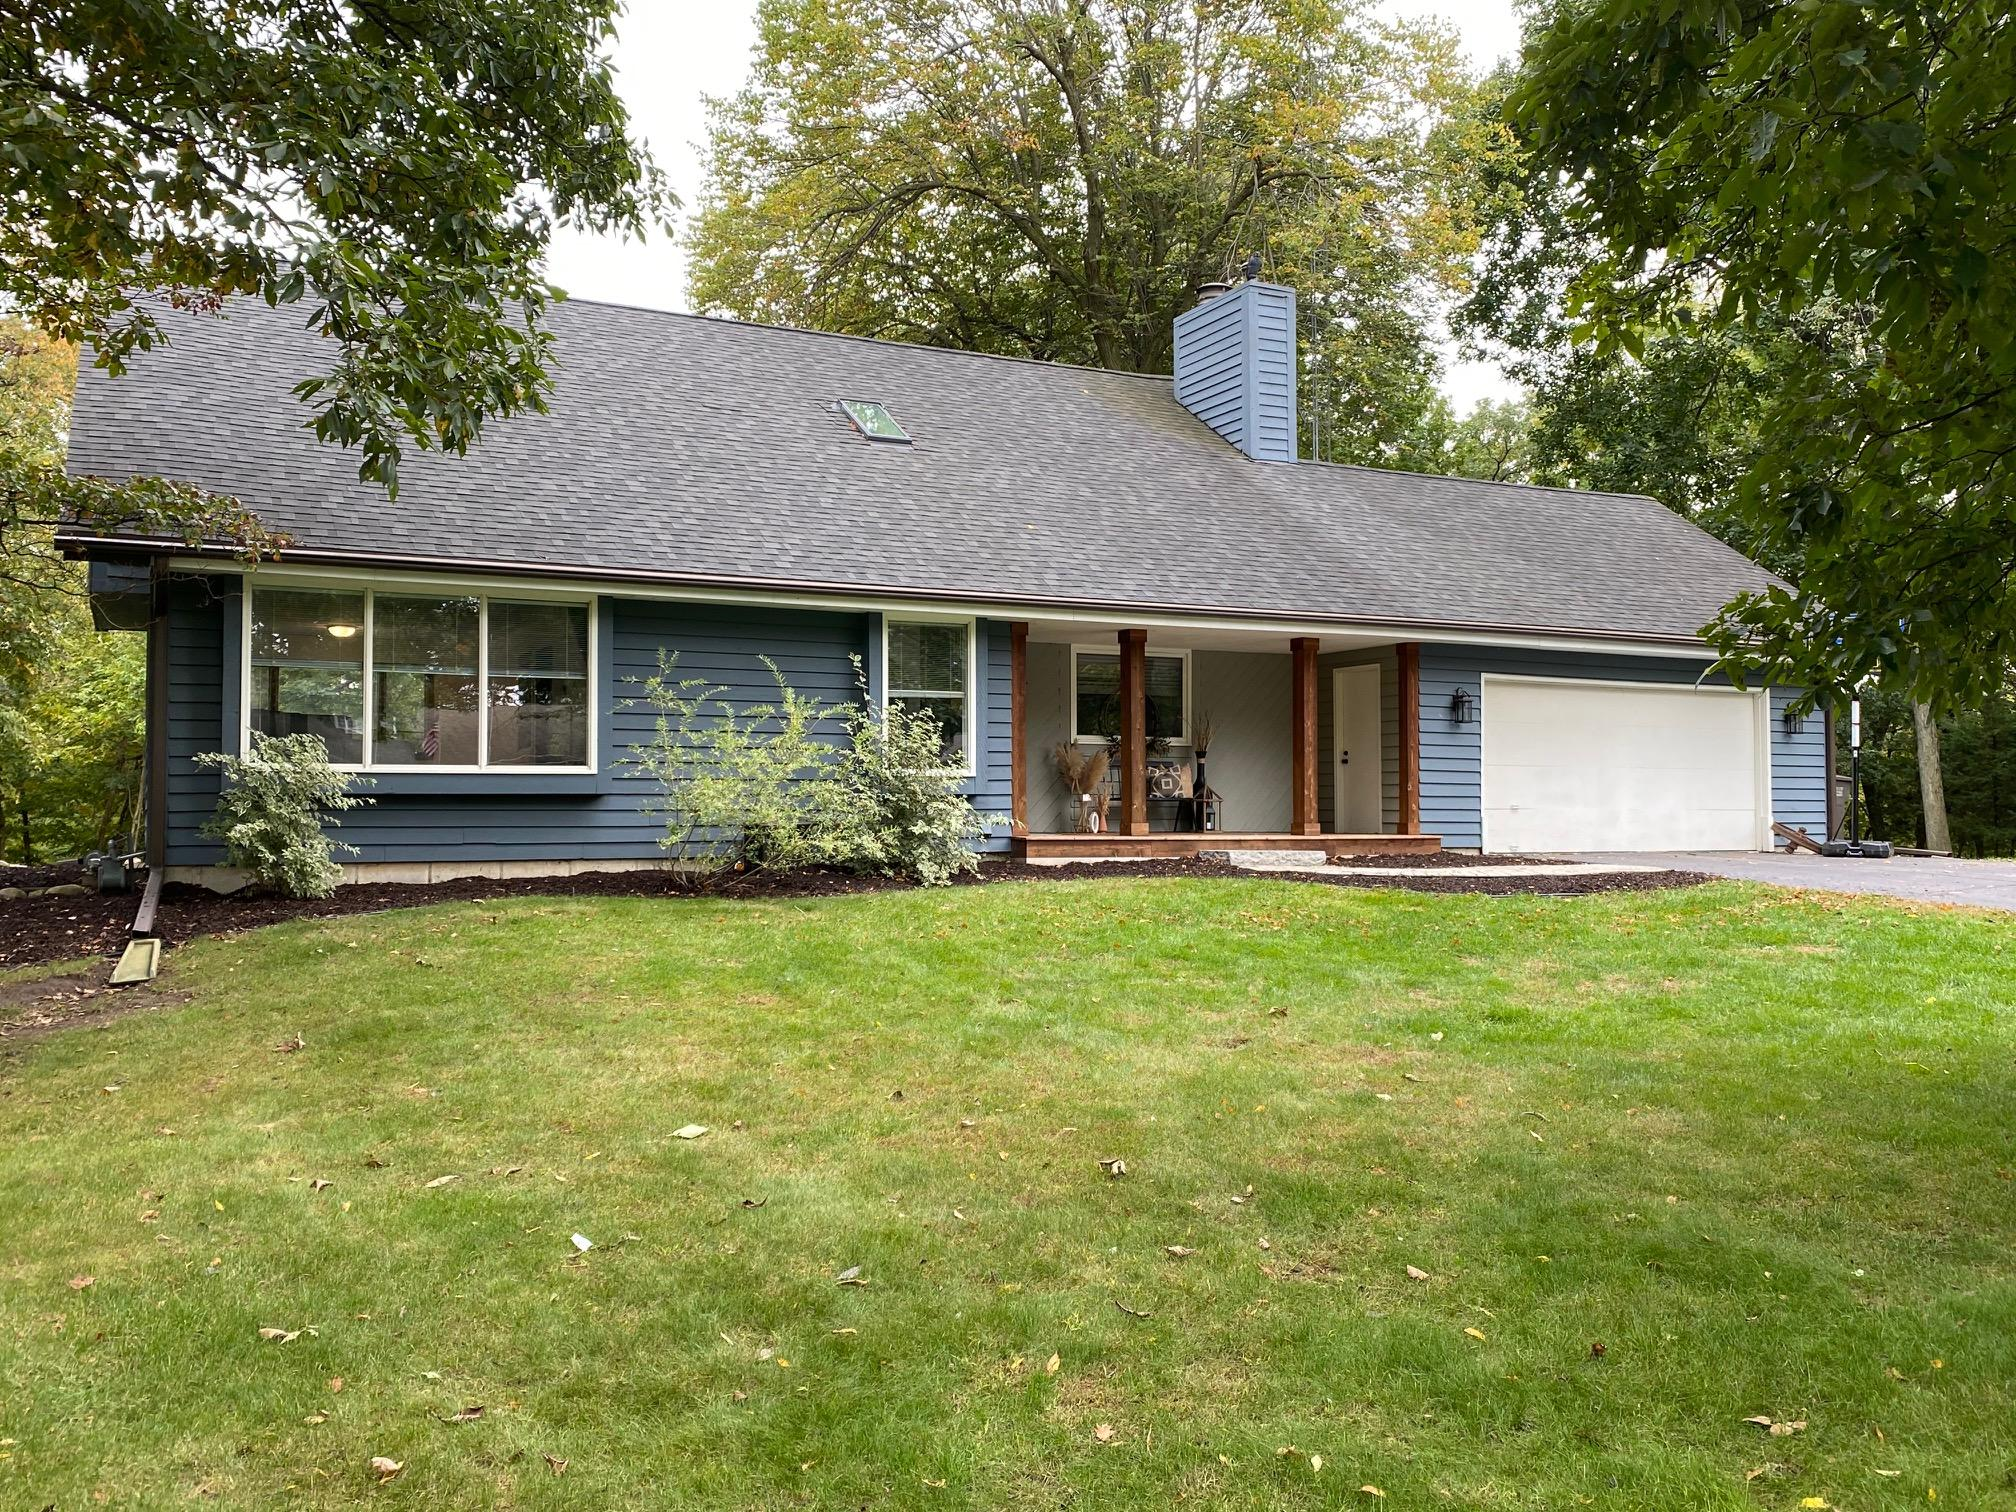 N7376 Nine Indian Trl, La Grange, Wisconsin 53121, 3 Bedrooms Bedrooms, 9 Rooms Rooms,2 BathroomsBathrooms,Single-family,For Sale,Nine Indian Trl,1712344